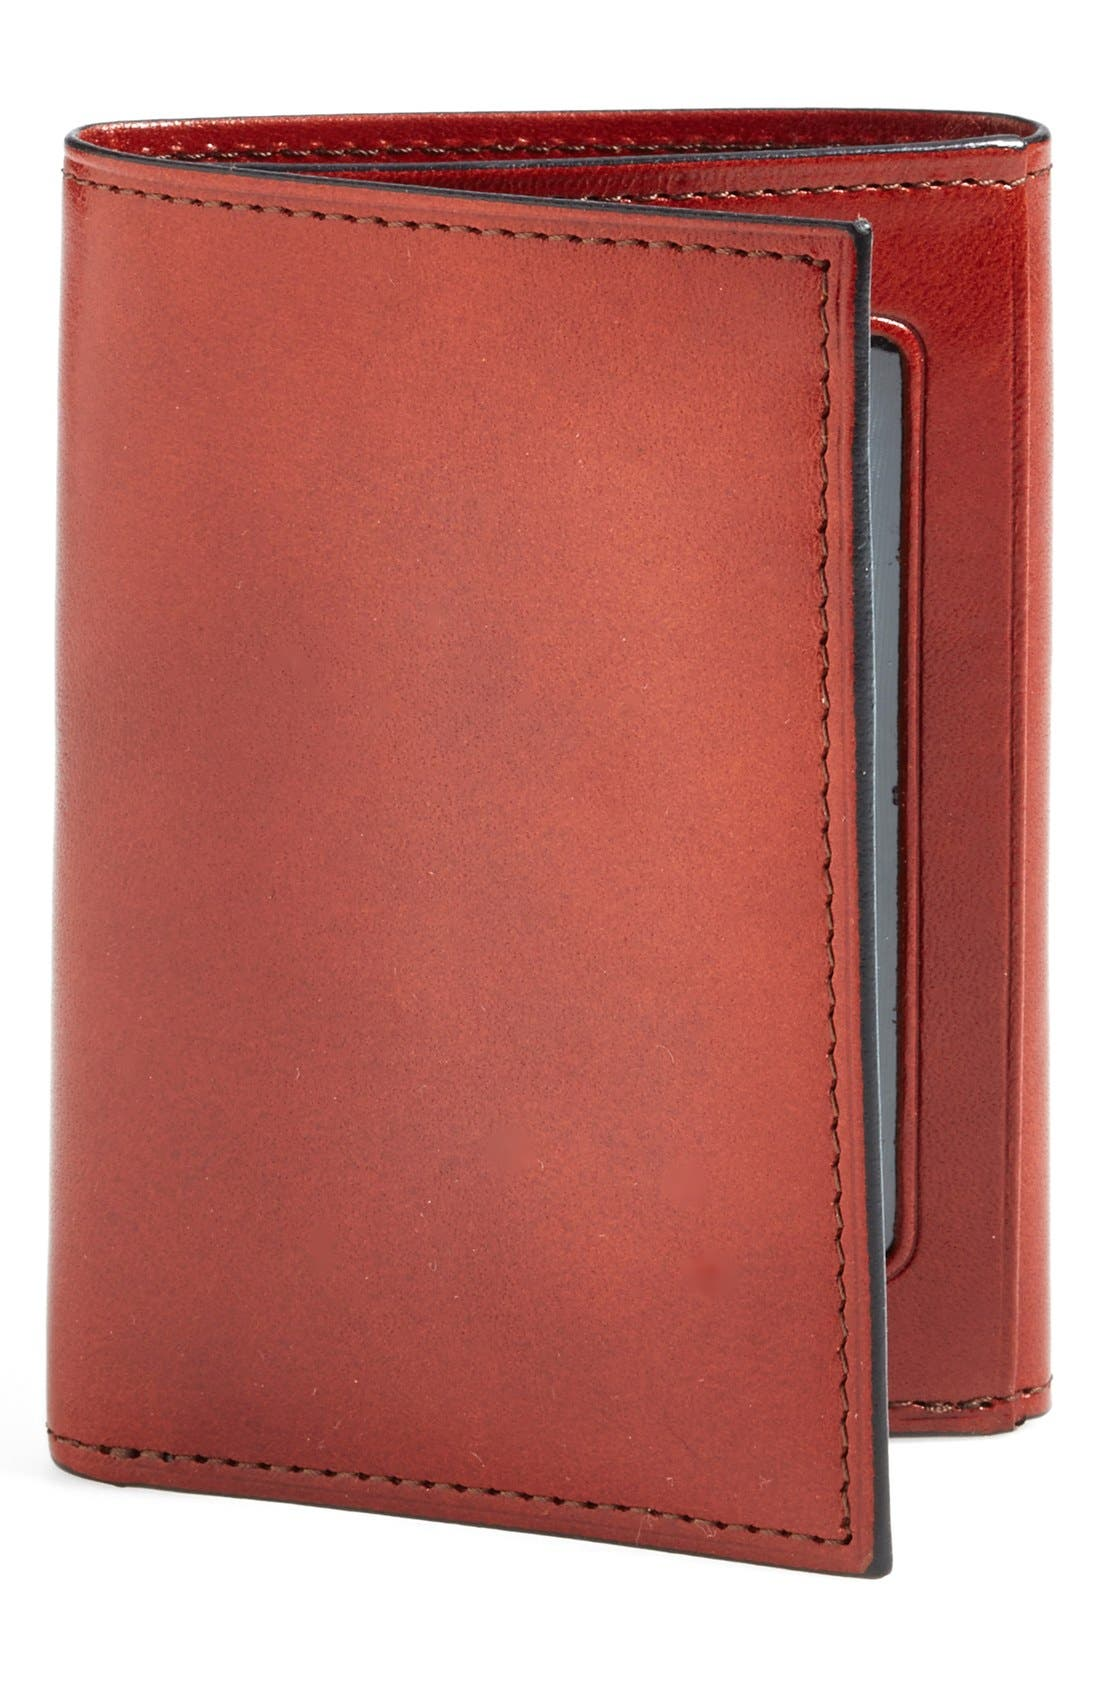 Main Image - Bosca 'Old Leather' Trifold Wallet